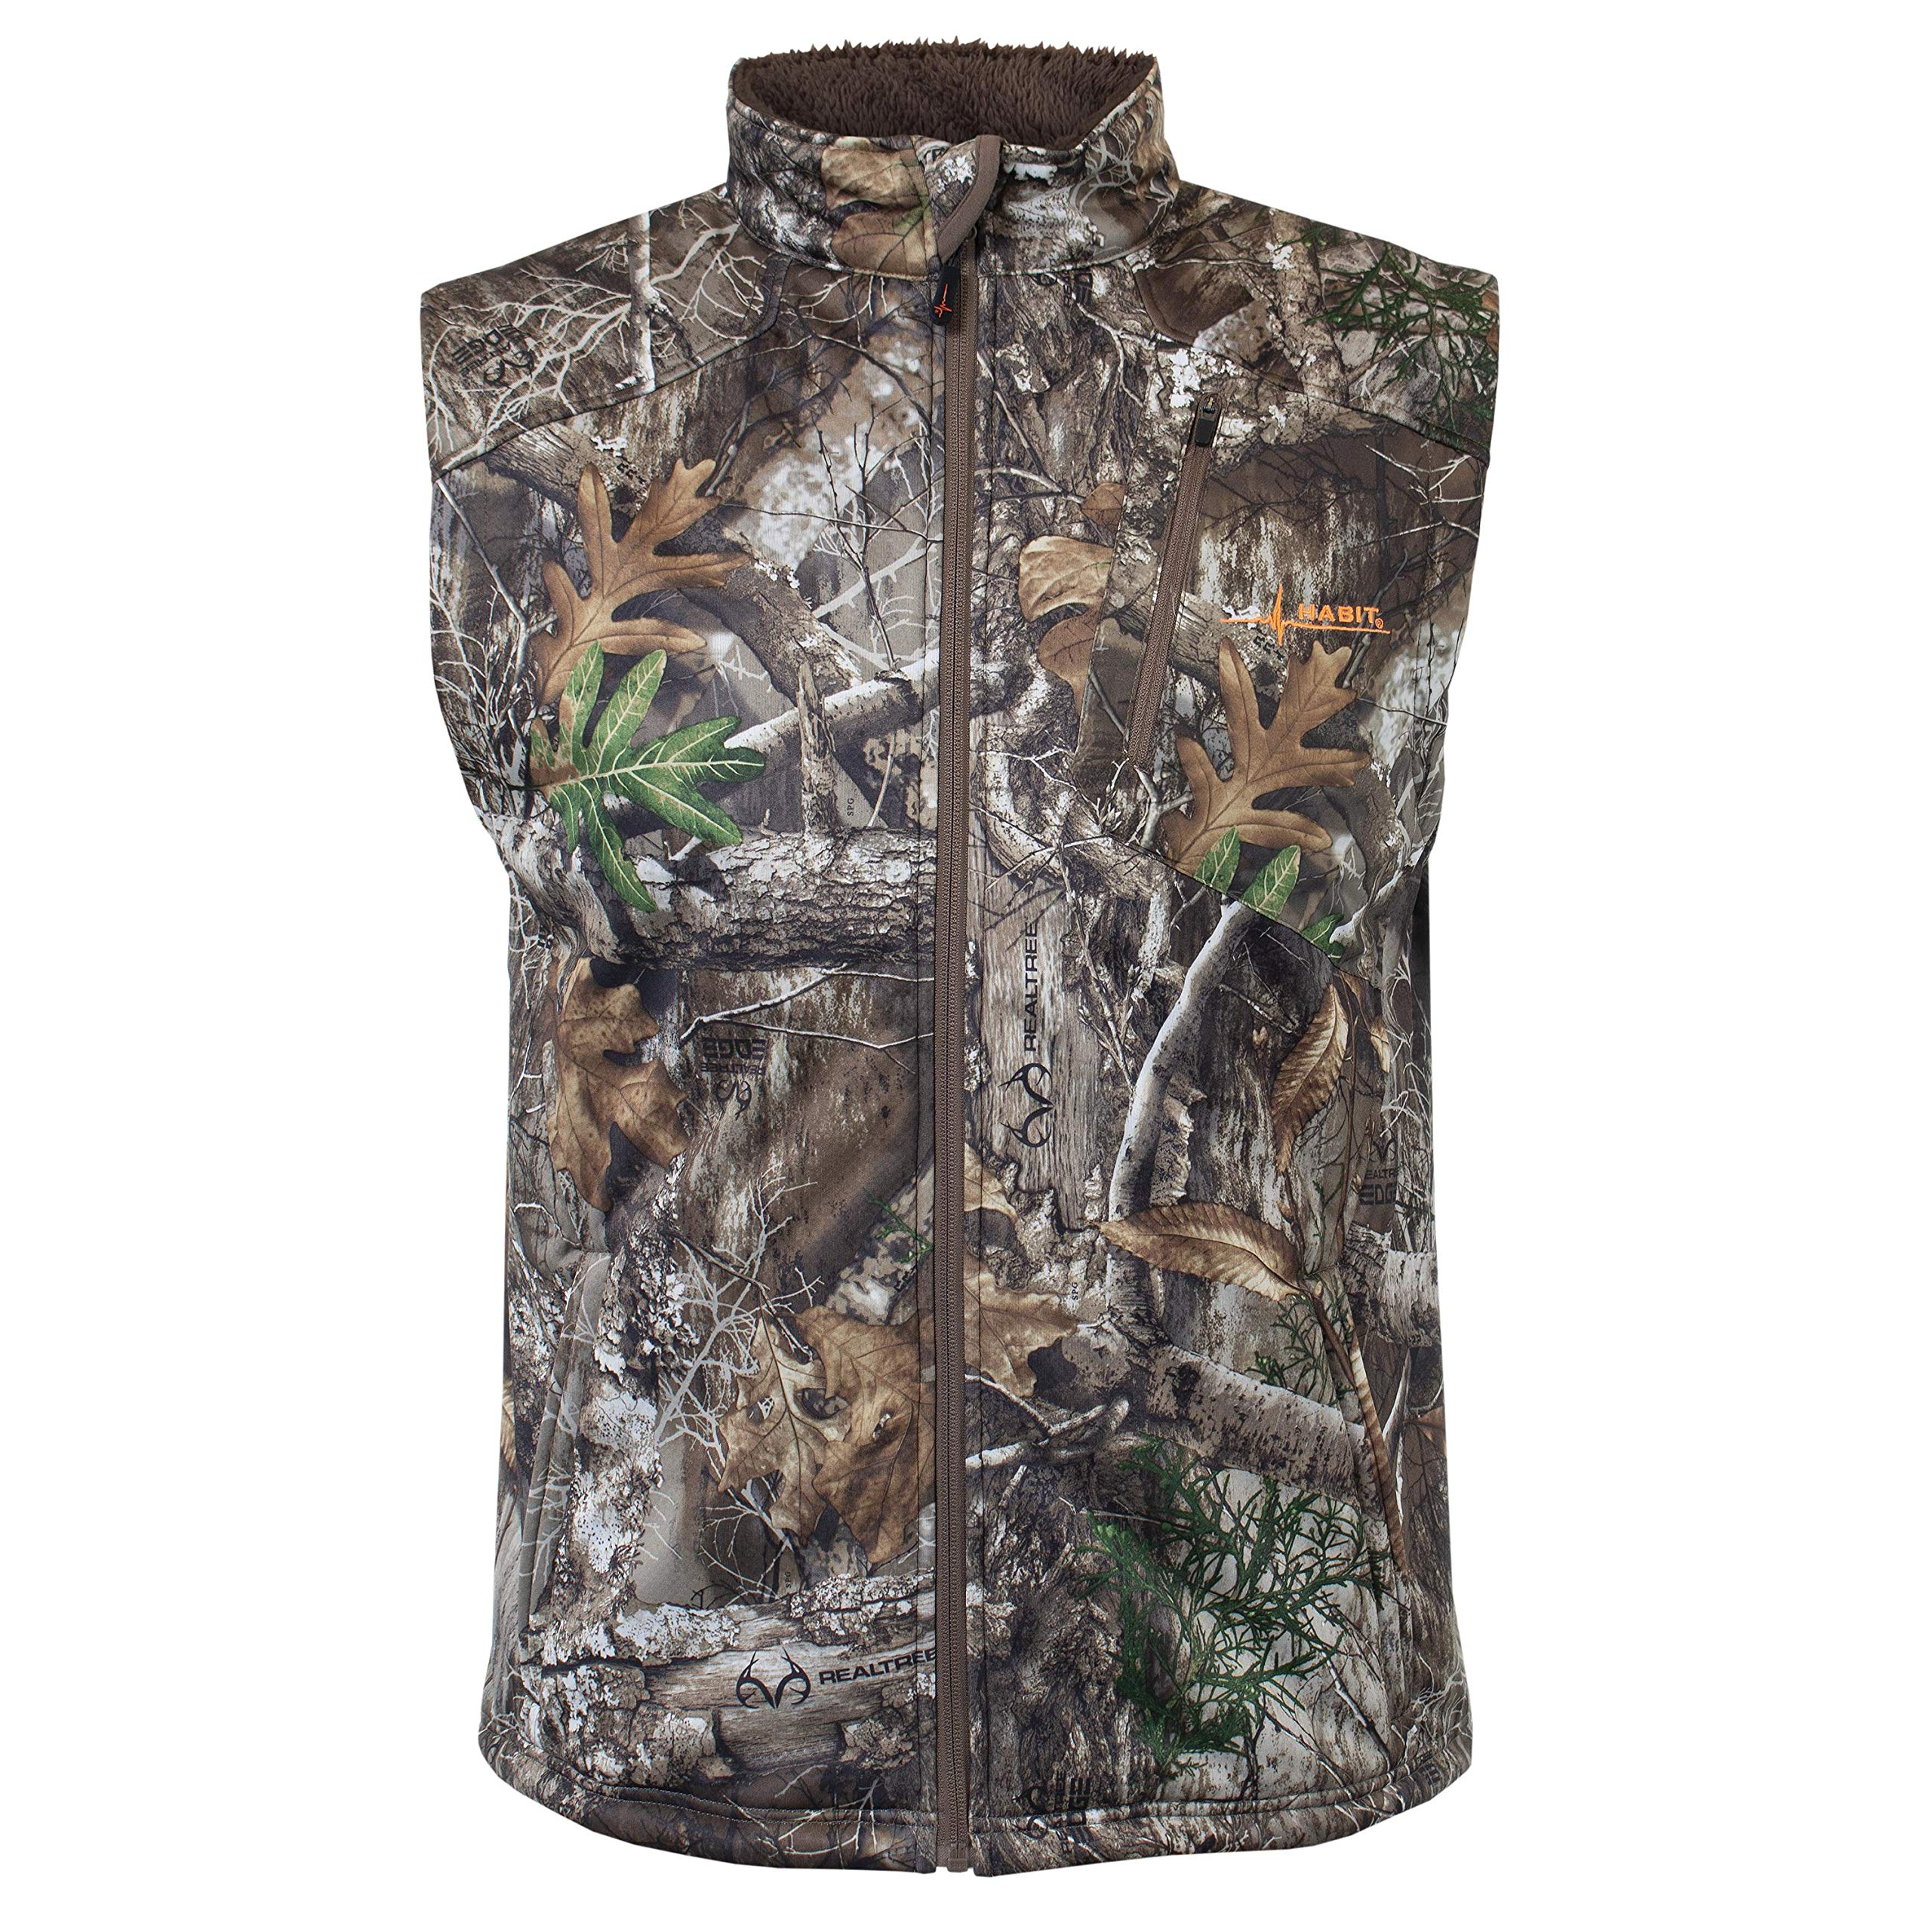 HABIT Men's Big Branch SherpaShell Vest, X-Large, Realtree Edge/Cub by HABIT